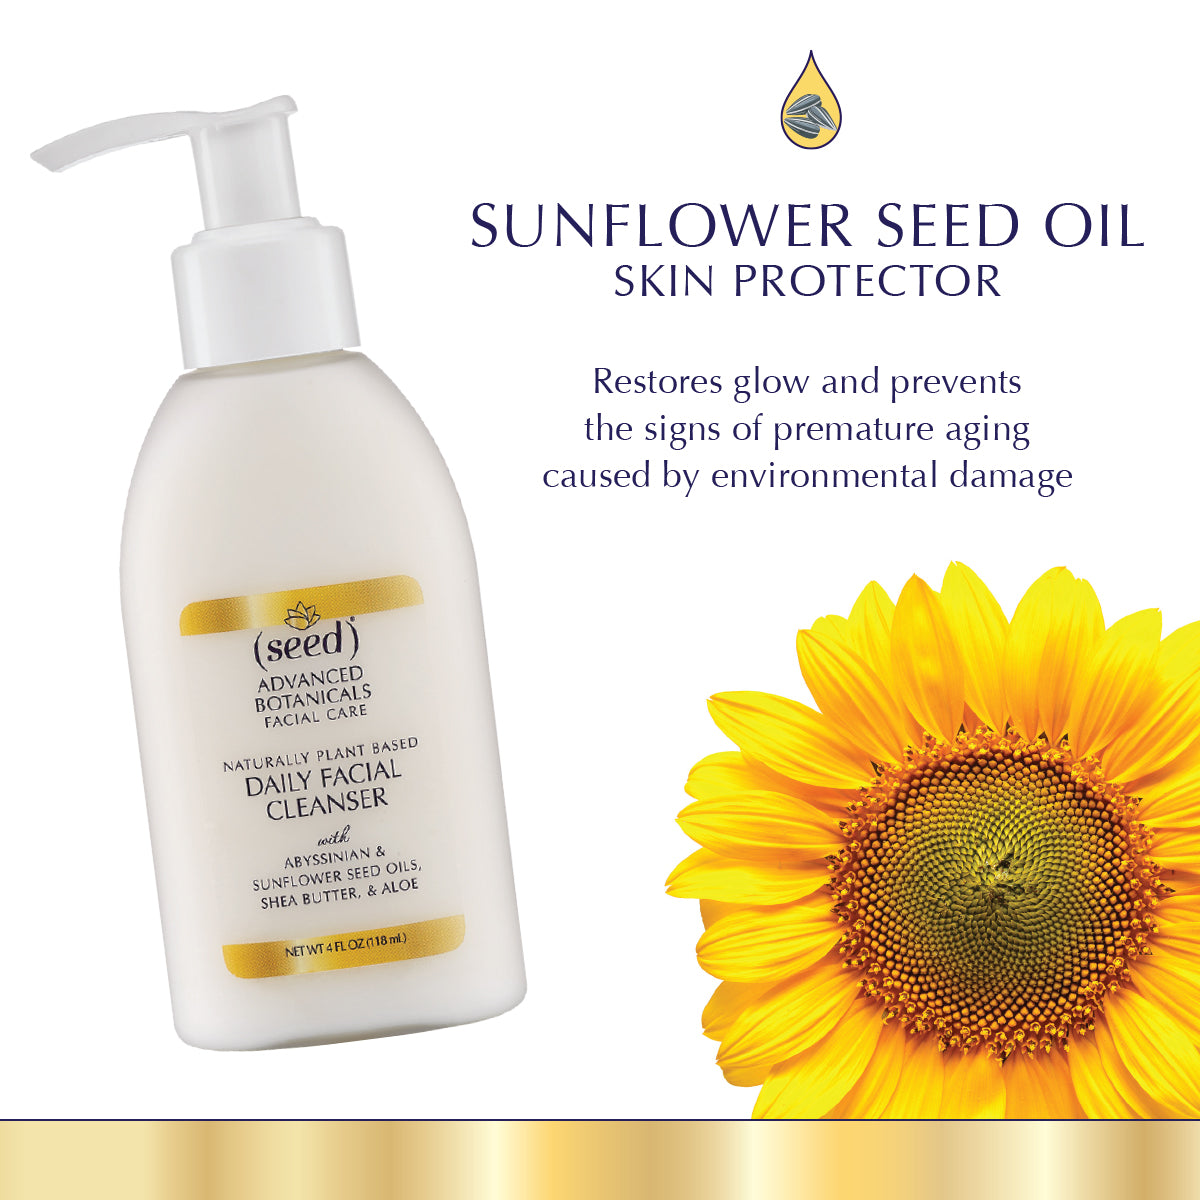 Seed Advanced Botanicals Facial Cleanser Wash features sunflower seed oil